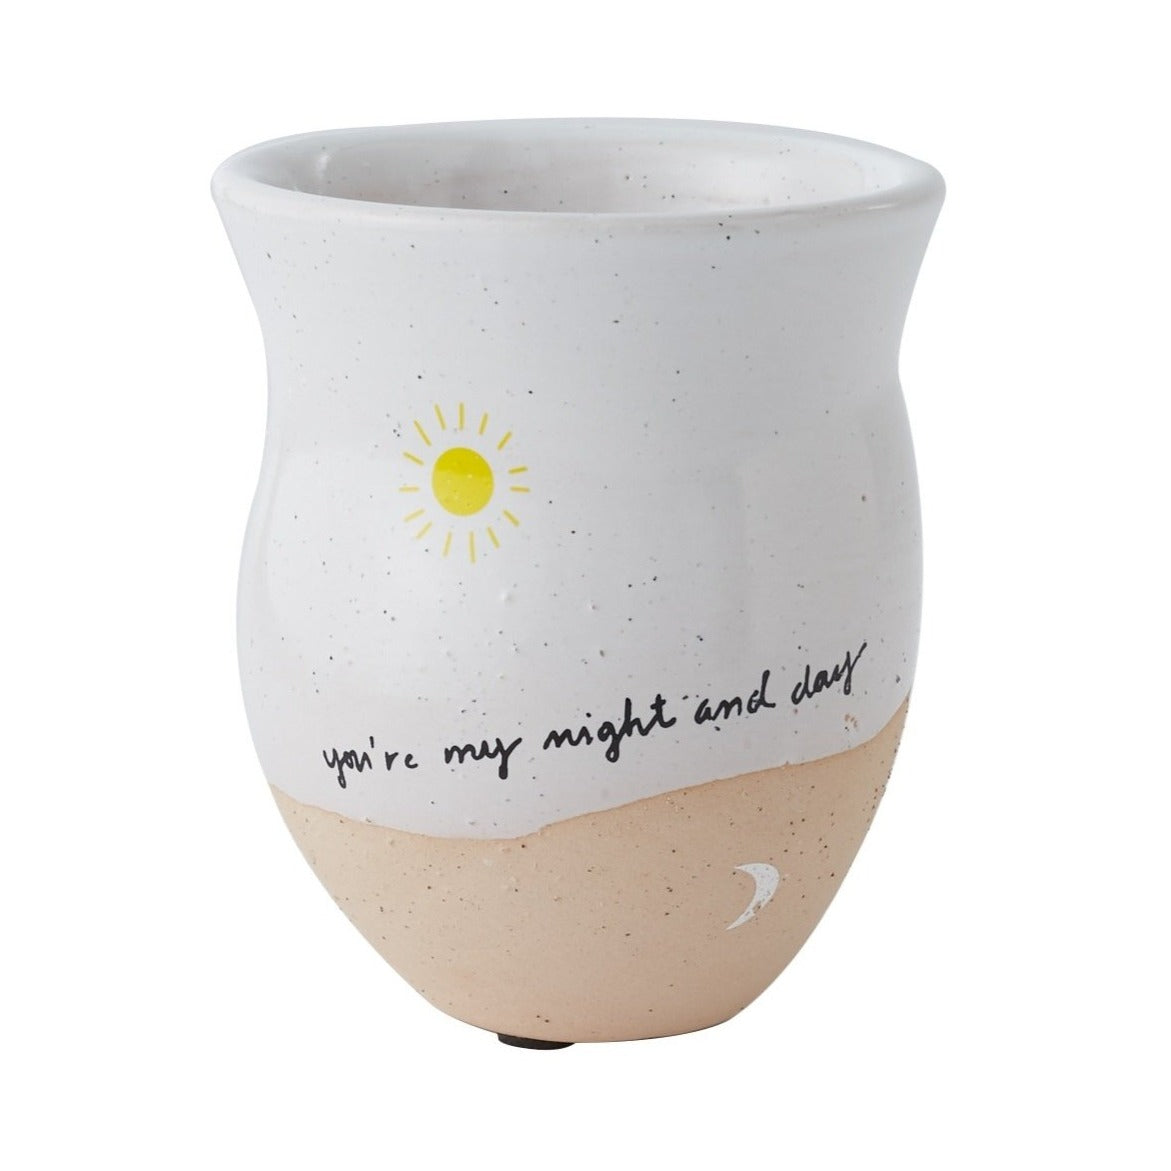 You Are My Night And Day Pot for sale, ceramic vase for home decor, ceramic succulent and cactus pots for sale, Succulent gift ideas